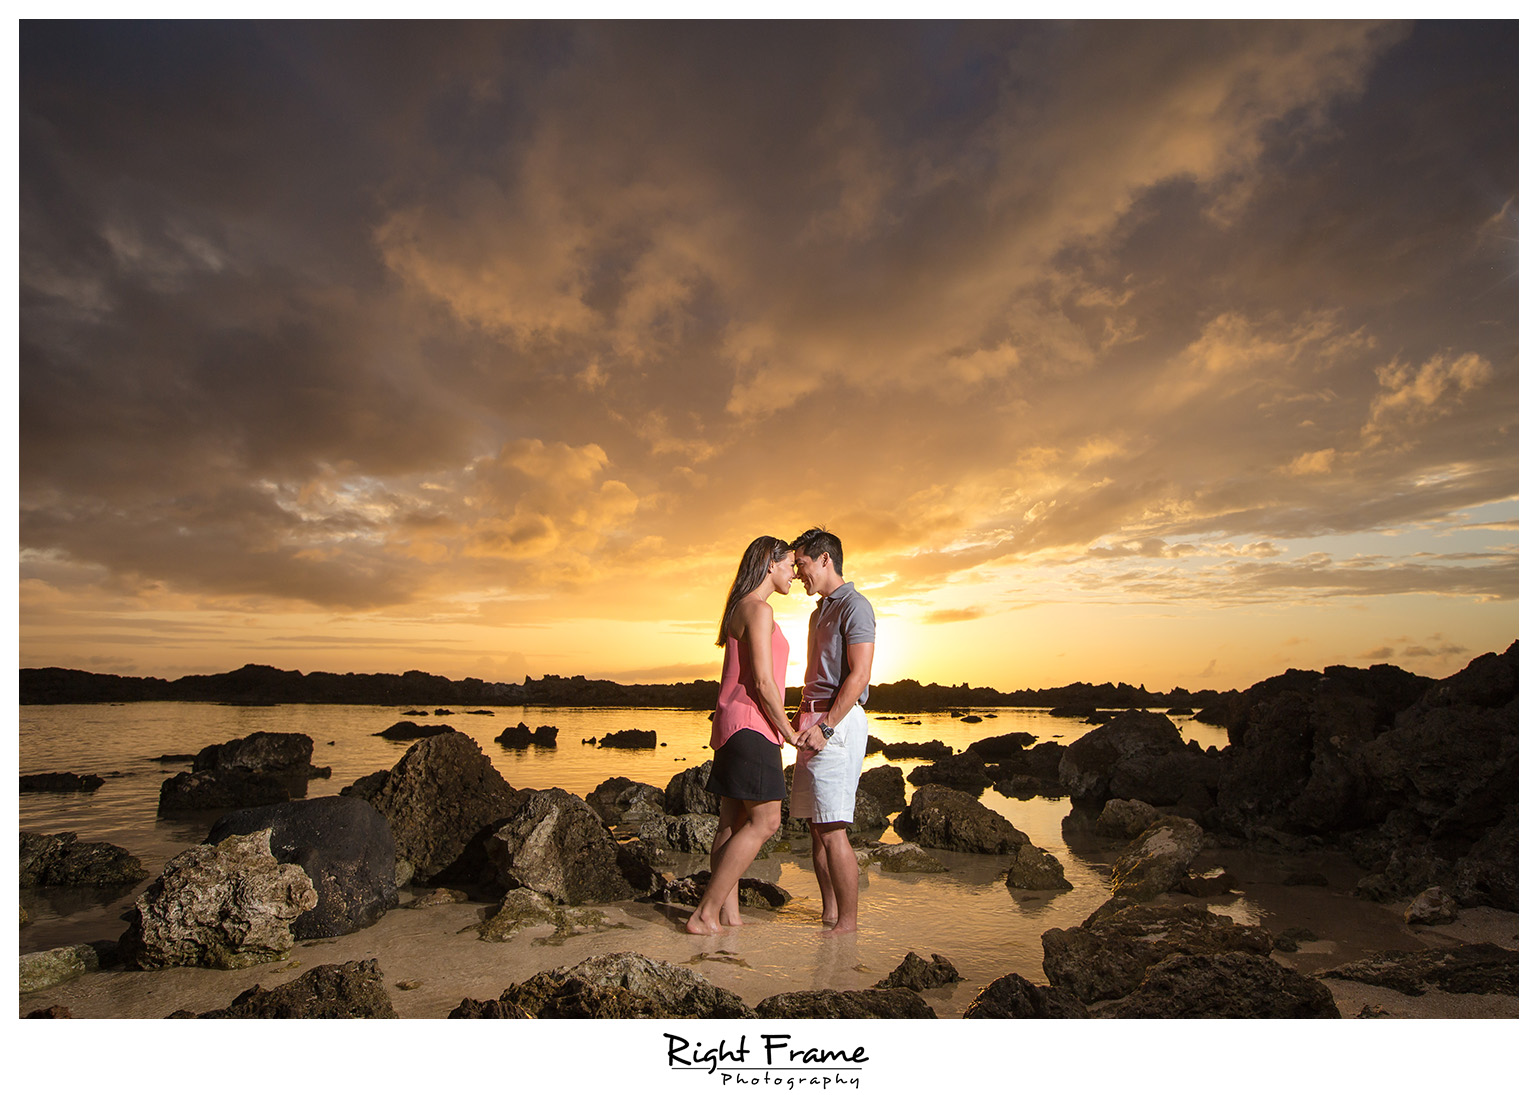 Creative Fun Hawaii Sunset Beach Couple Photography